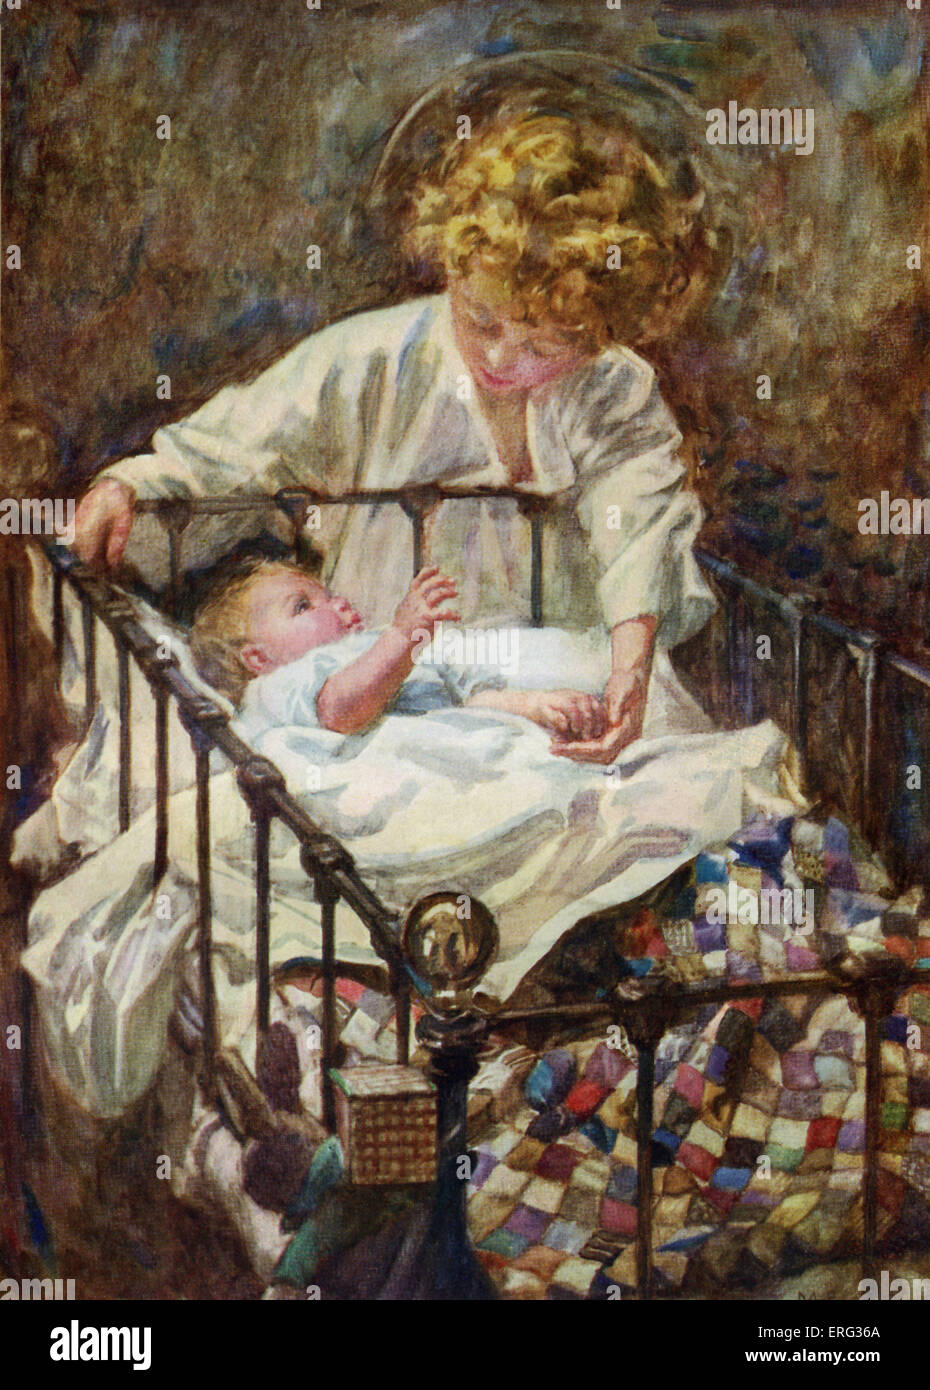 An angel bends over a baby's cot, illustration by M. E. Gray, to 'One Year Old', a poem by Marjory Royce. - Stock Image